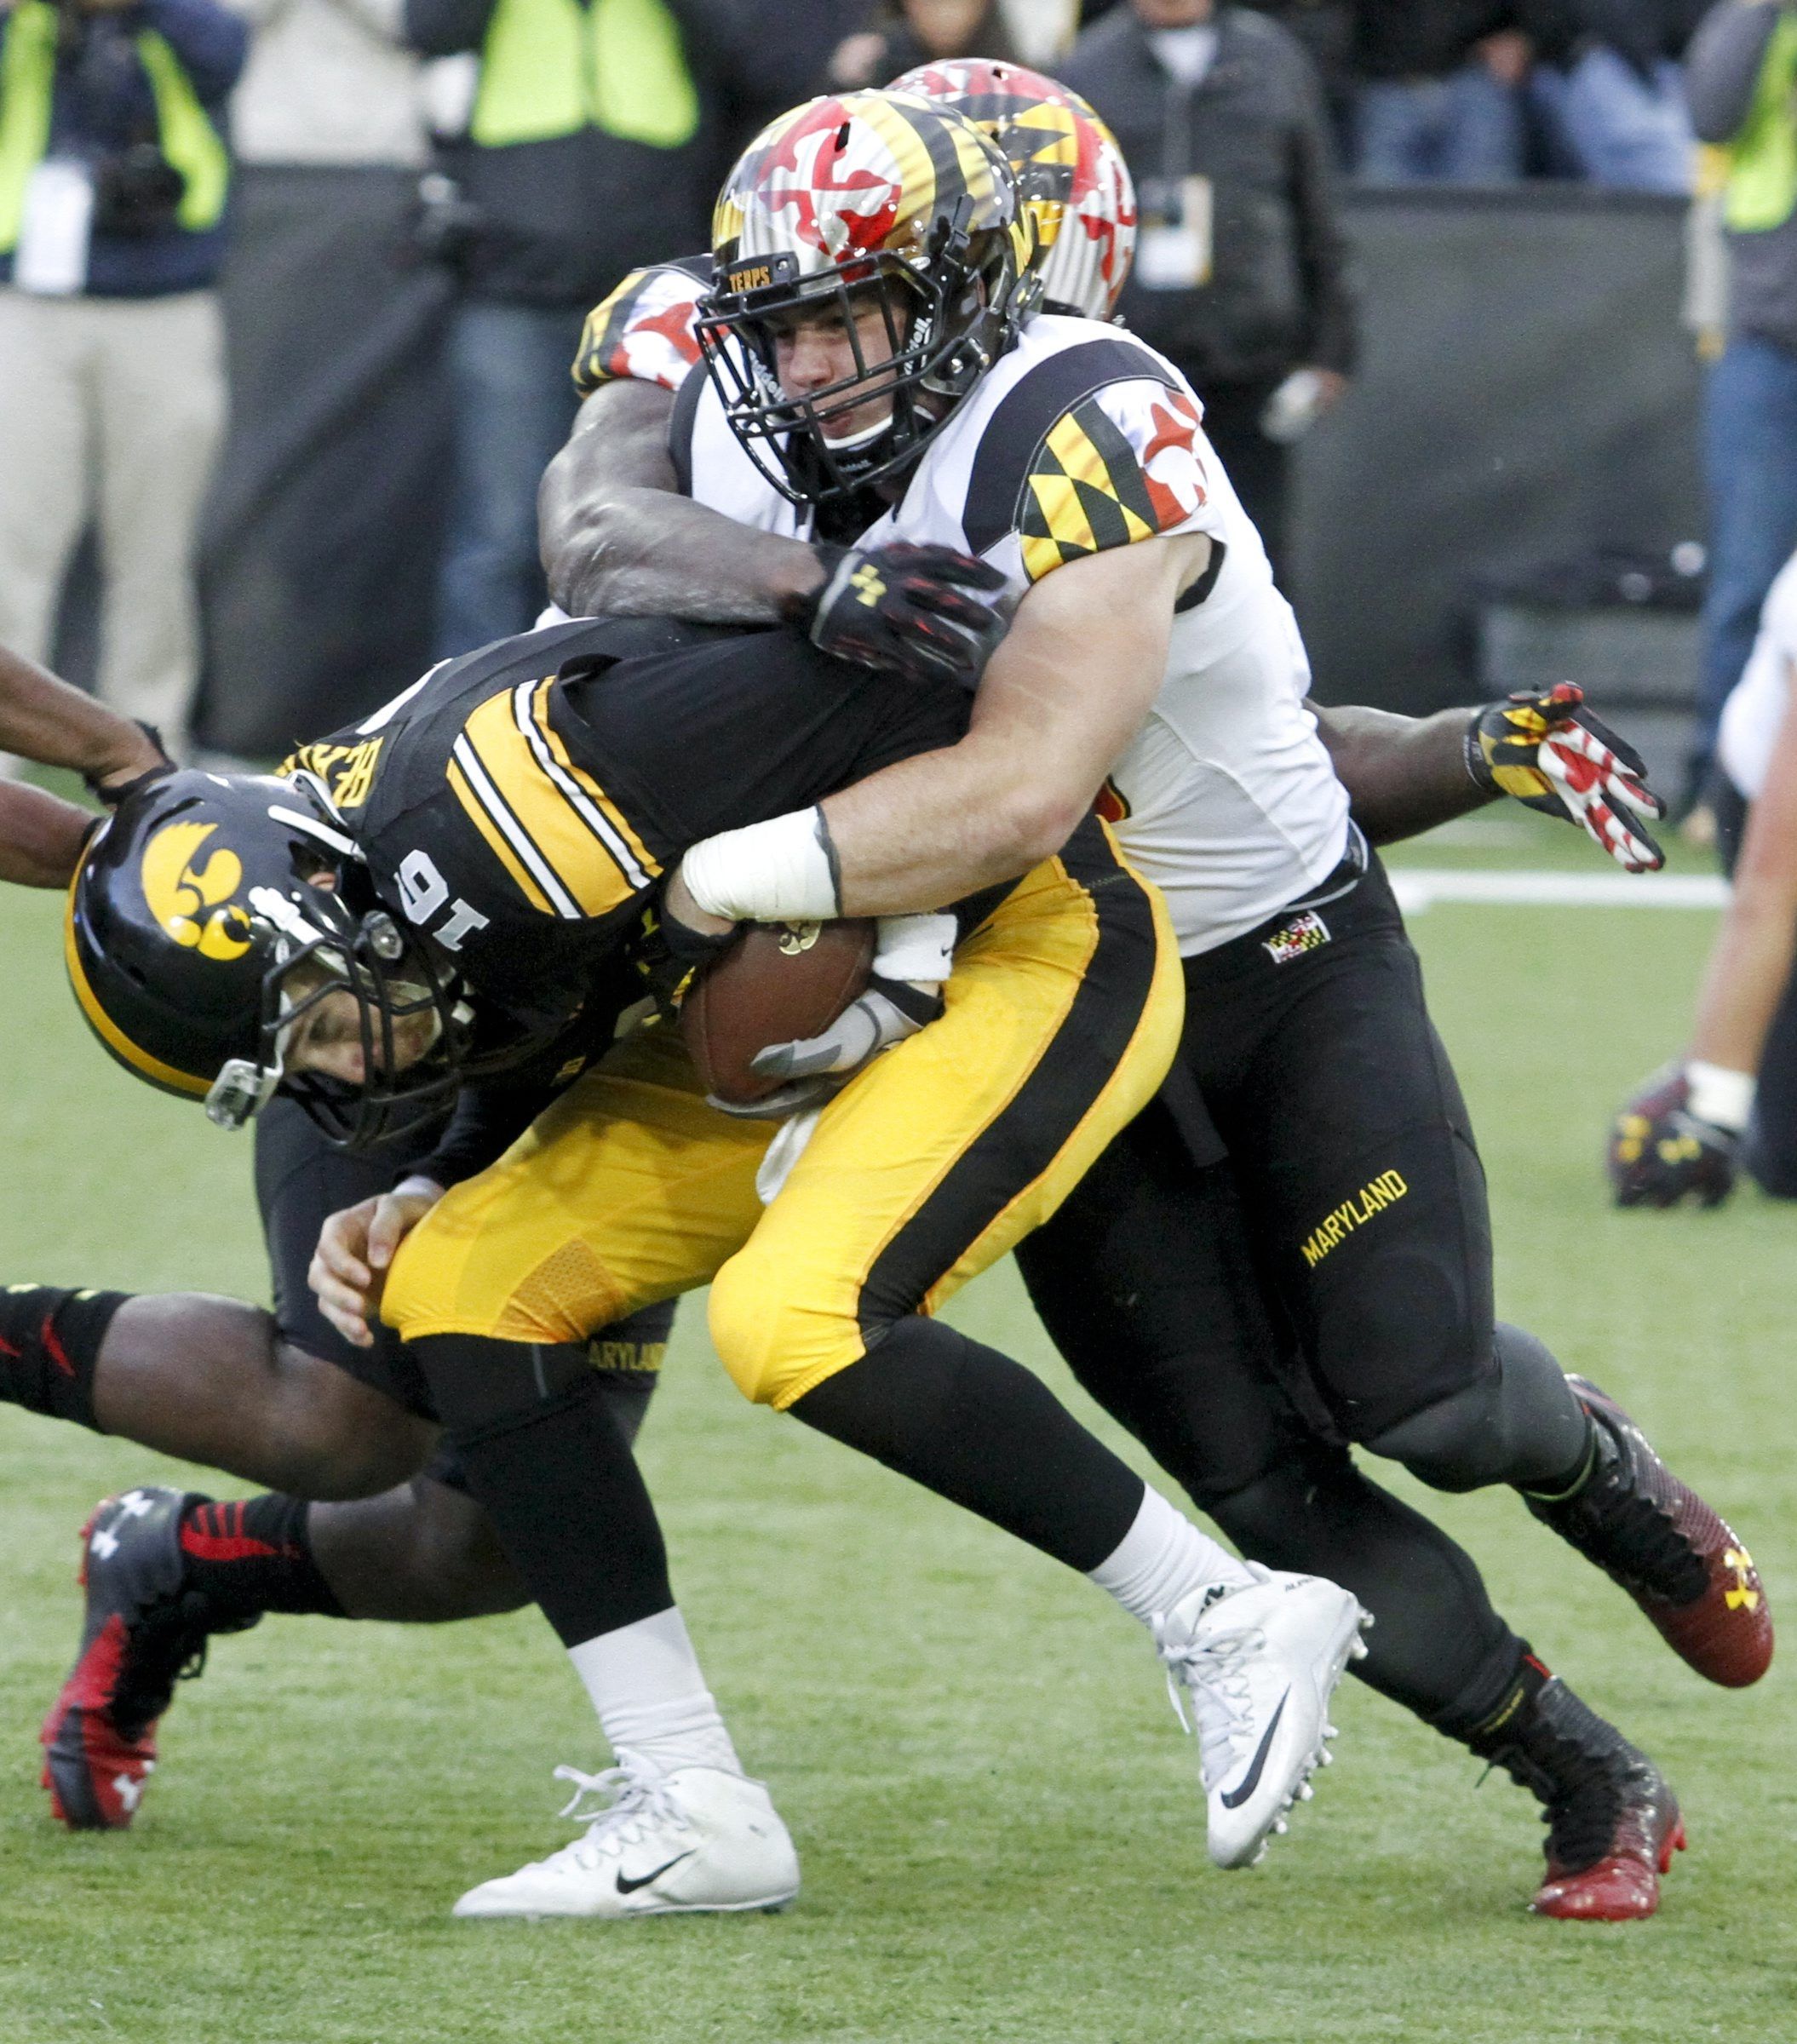 Maryland defensive lineman Yannick Ngakoue set a Terrapins record and finished second in the country with 13.5 sacks in 2015.